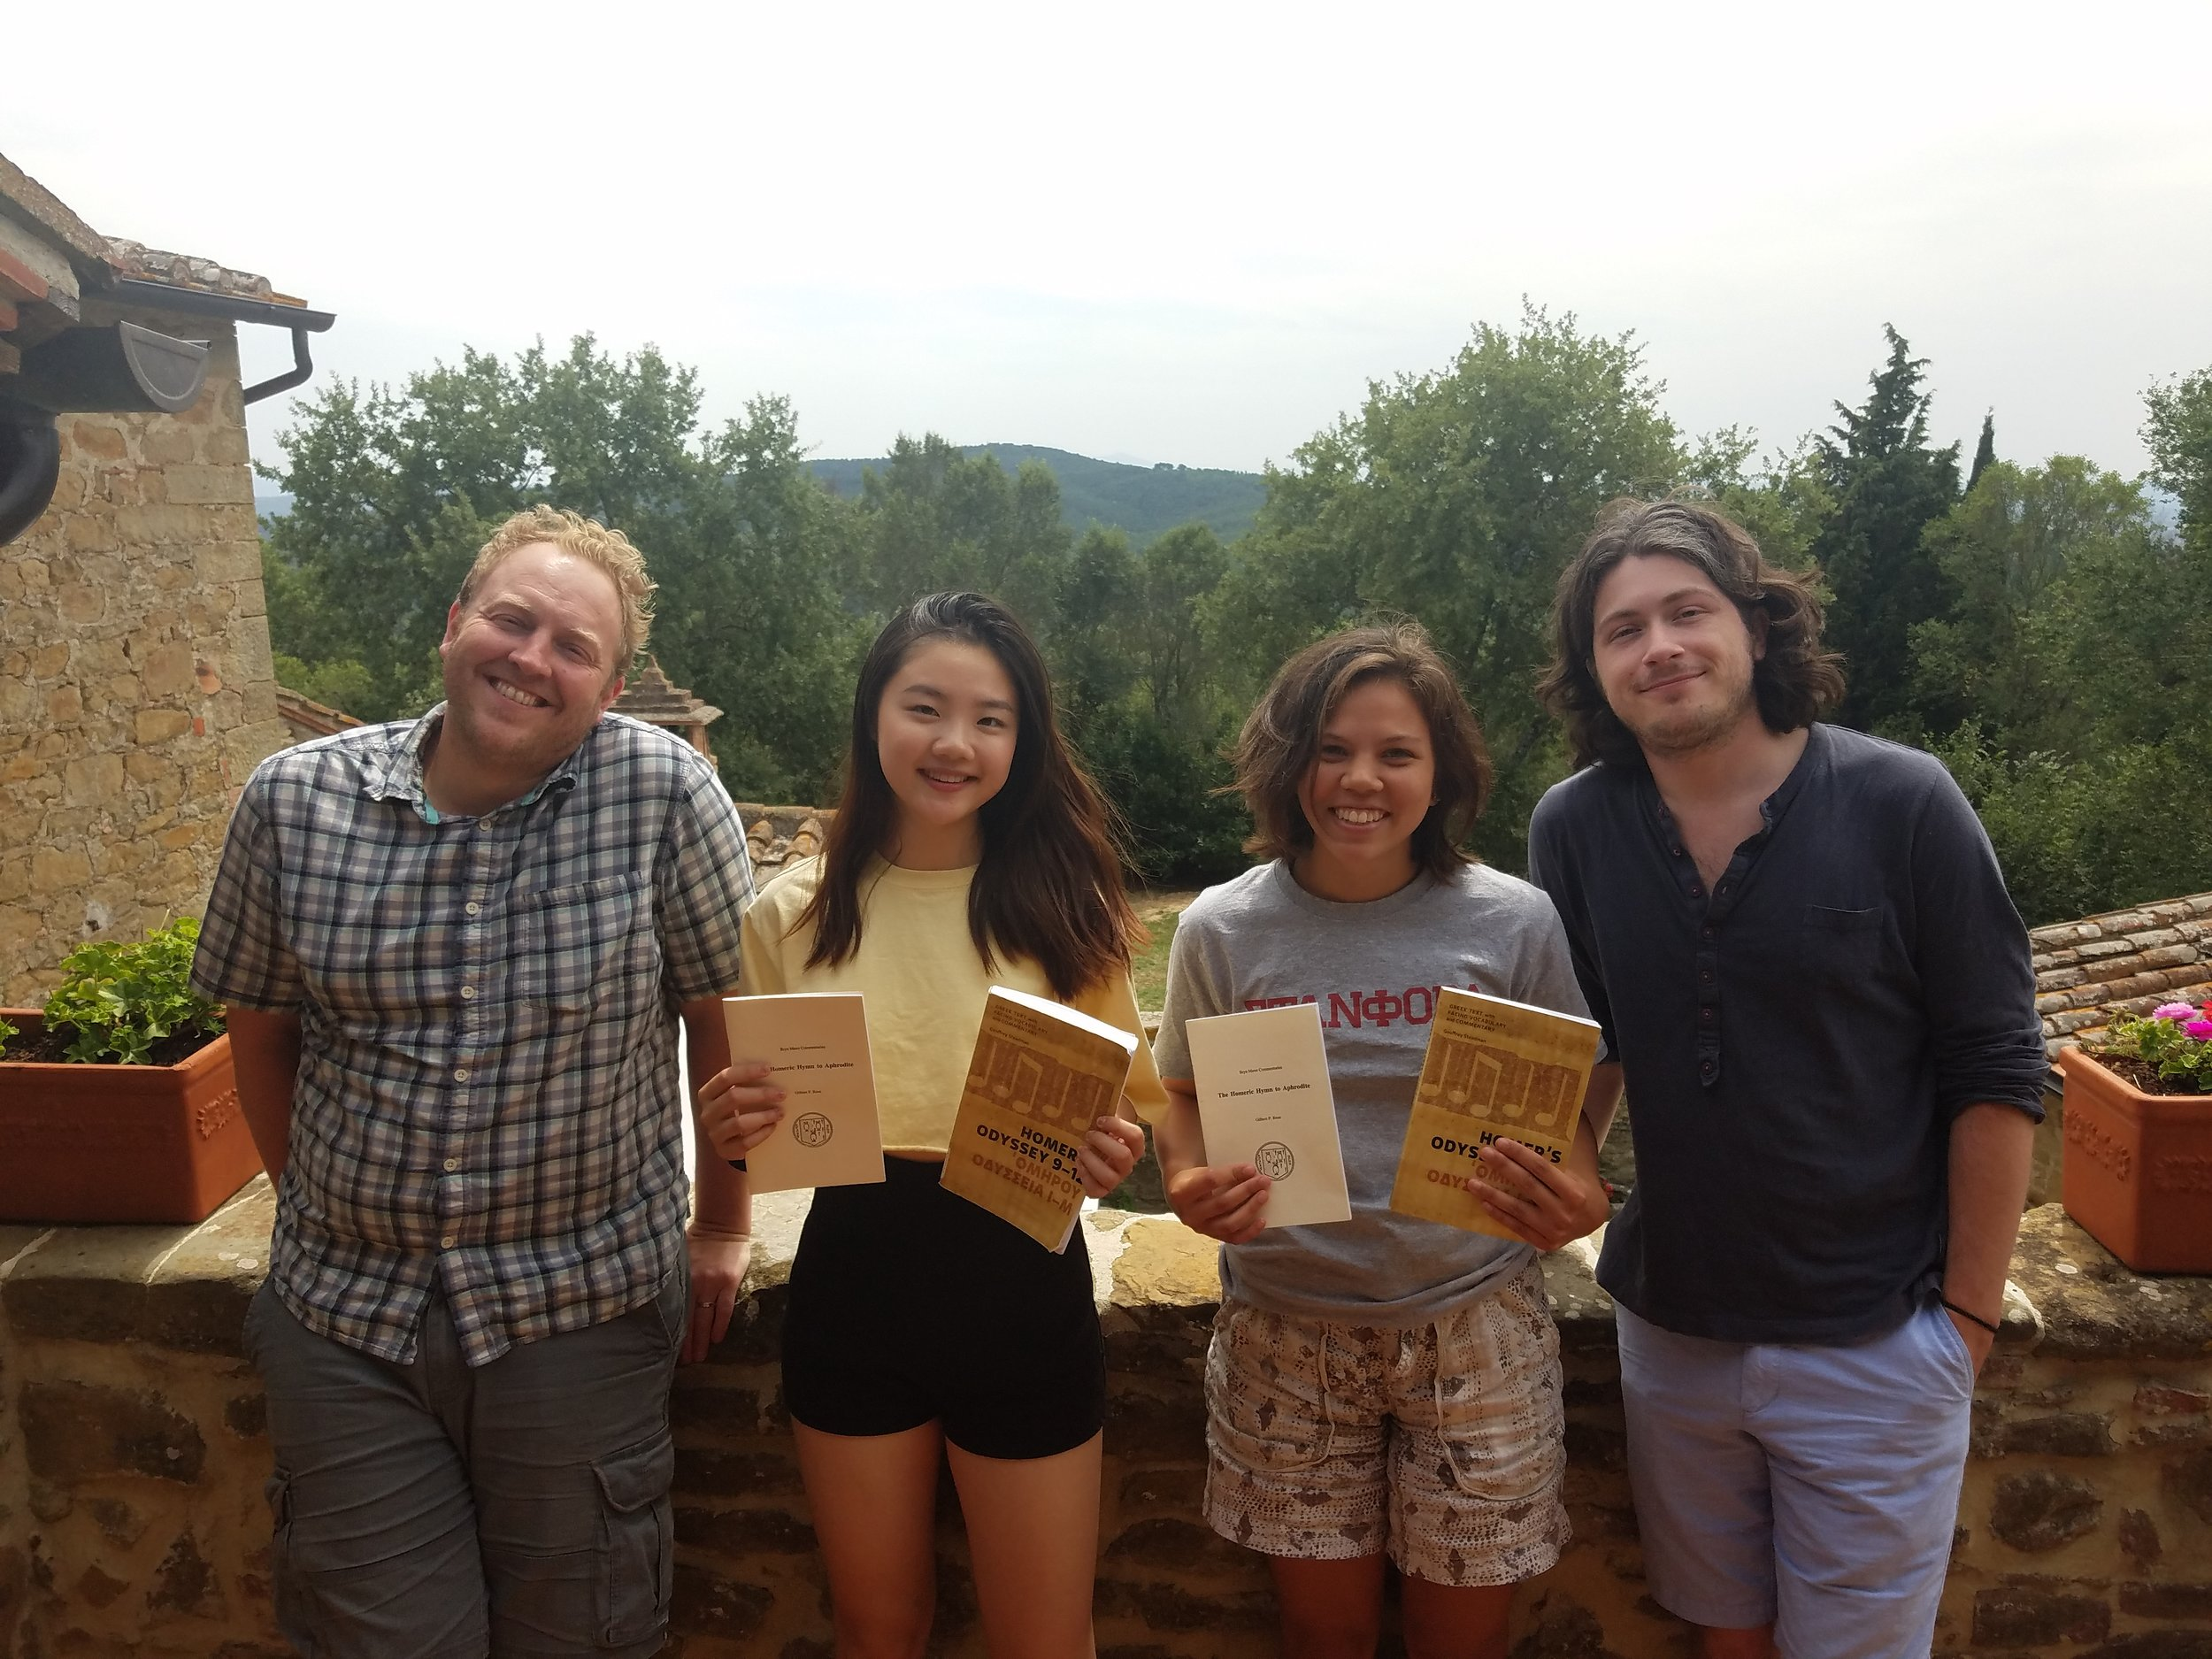 Greek Crew: Jeff Ulrich (our wonderful instructor), Lindsey Chan, Aulden Foltz, and Eric Silver